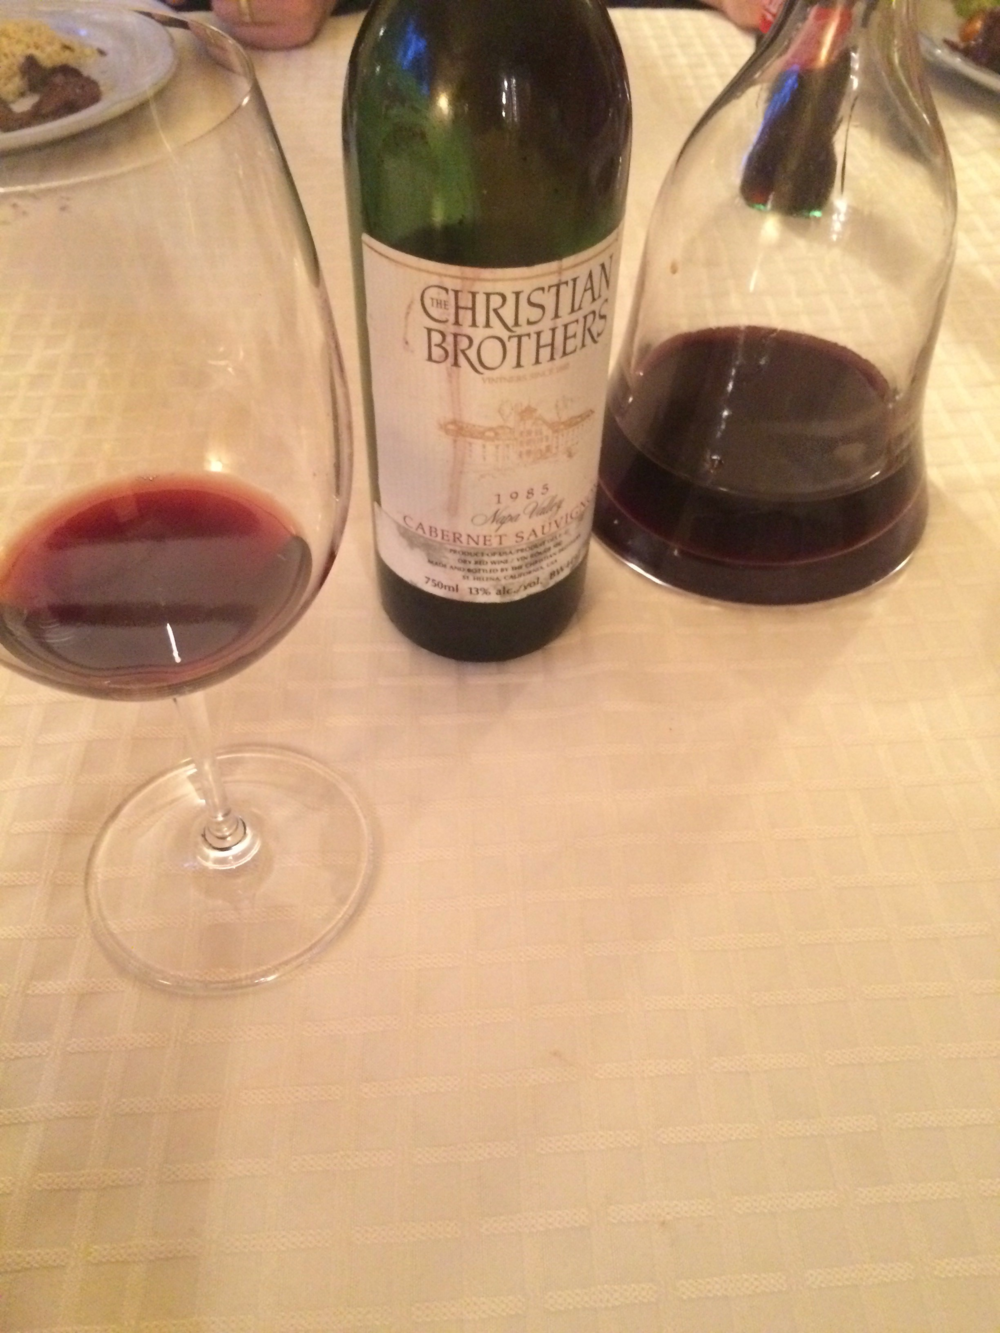 The Christian Brothers Cabernet Sauvignon, a tasting of the 1985 vintage.